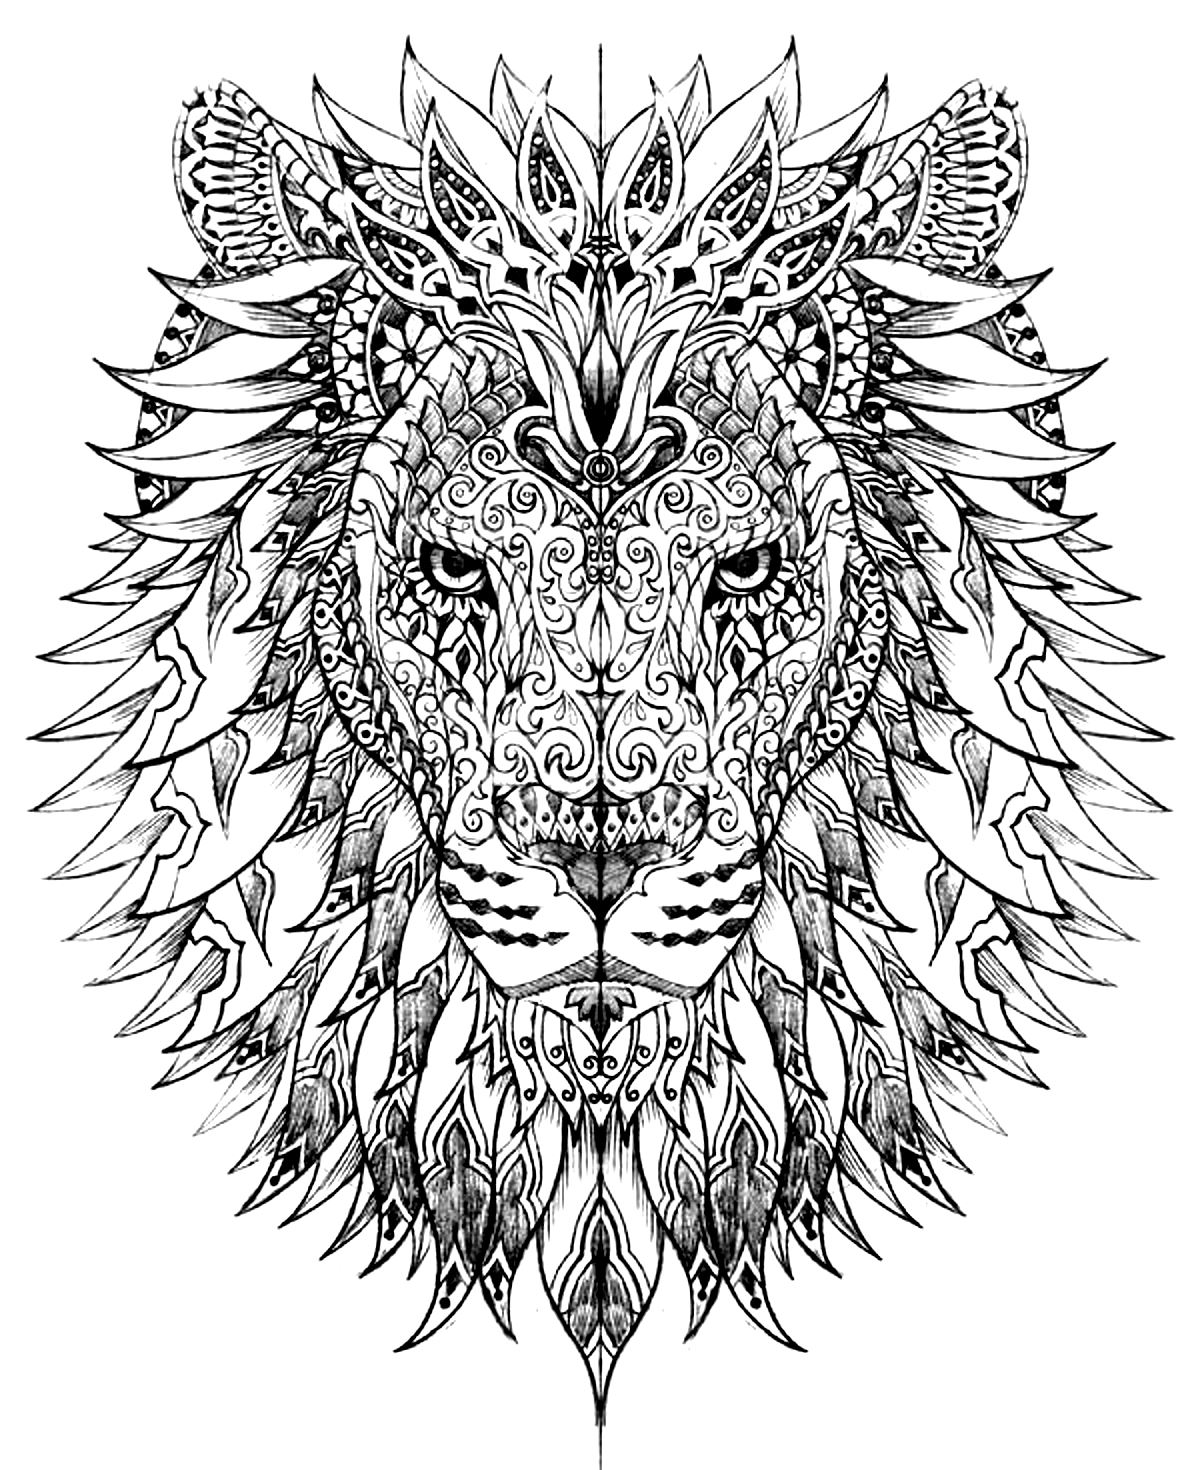 Coloring Pages Lion Head Coloring Page animals coloring pages for adults adult difficult lion headfrom the gallery animals